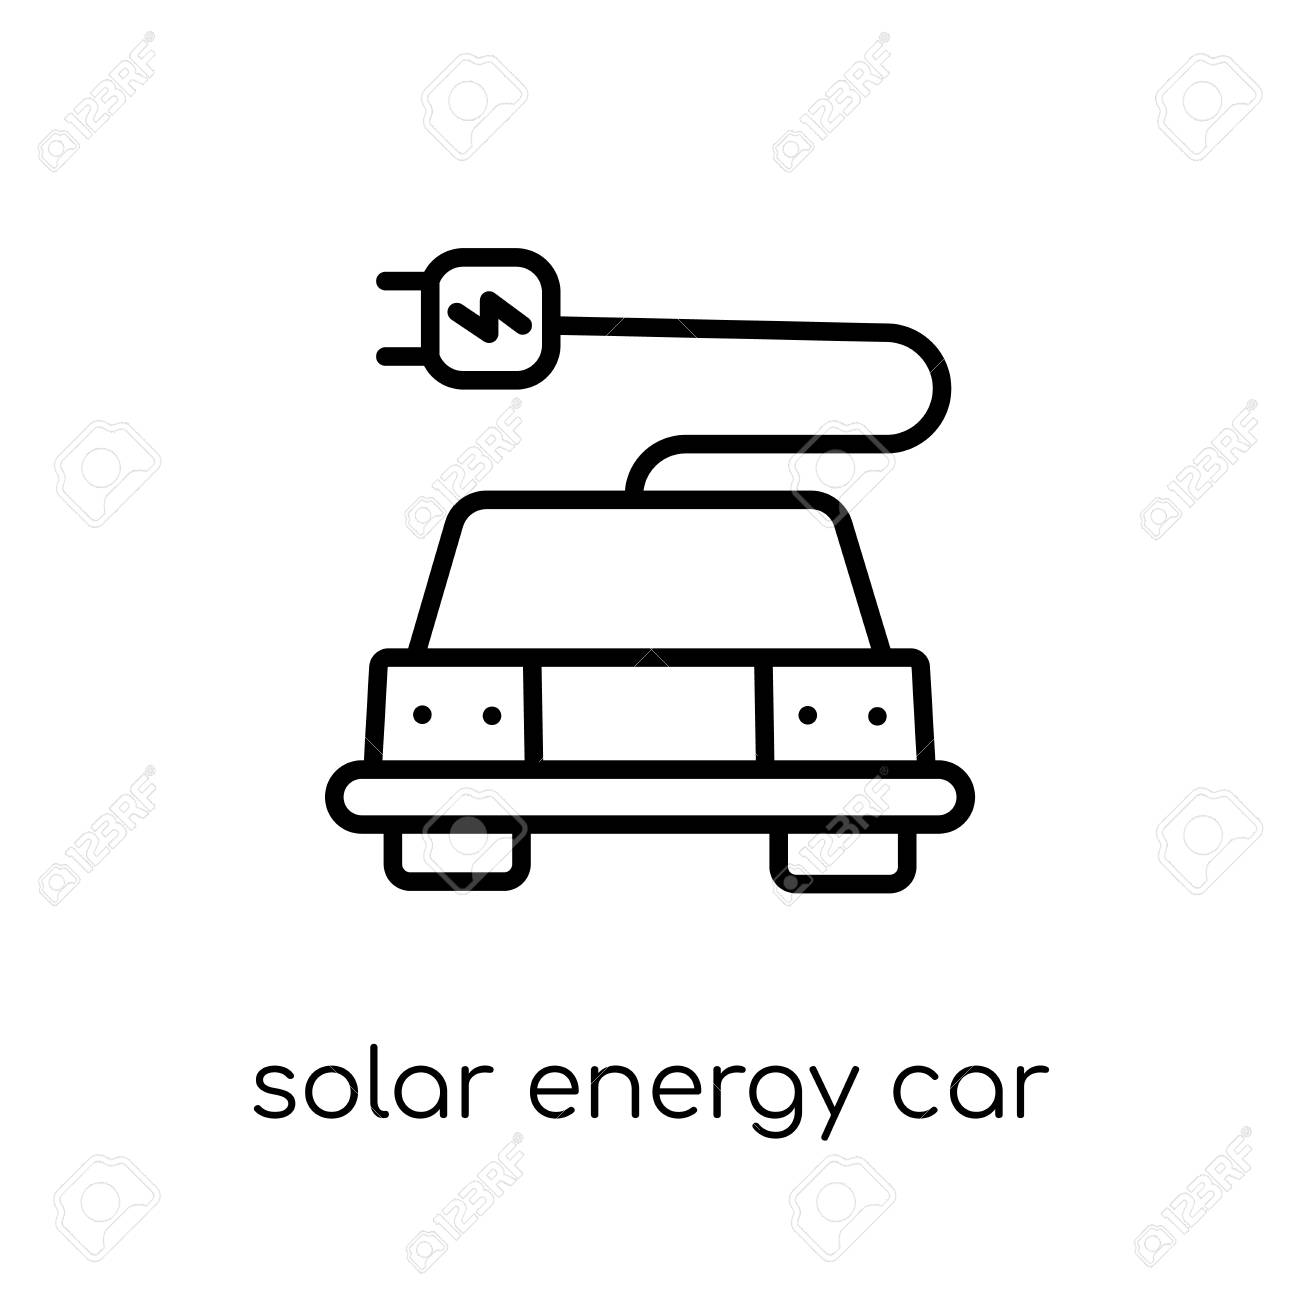 solar energy car icon. Trendy modern flat linear vector solar energy car icon on white background from thin line Artificial Intelligence, Future Technology collection, outline vector illustration - 112418678